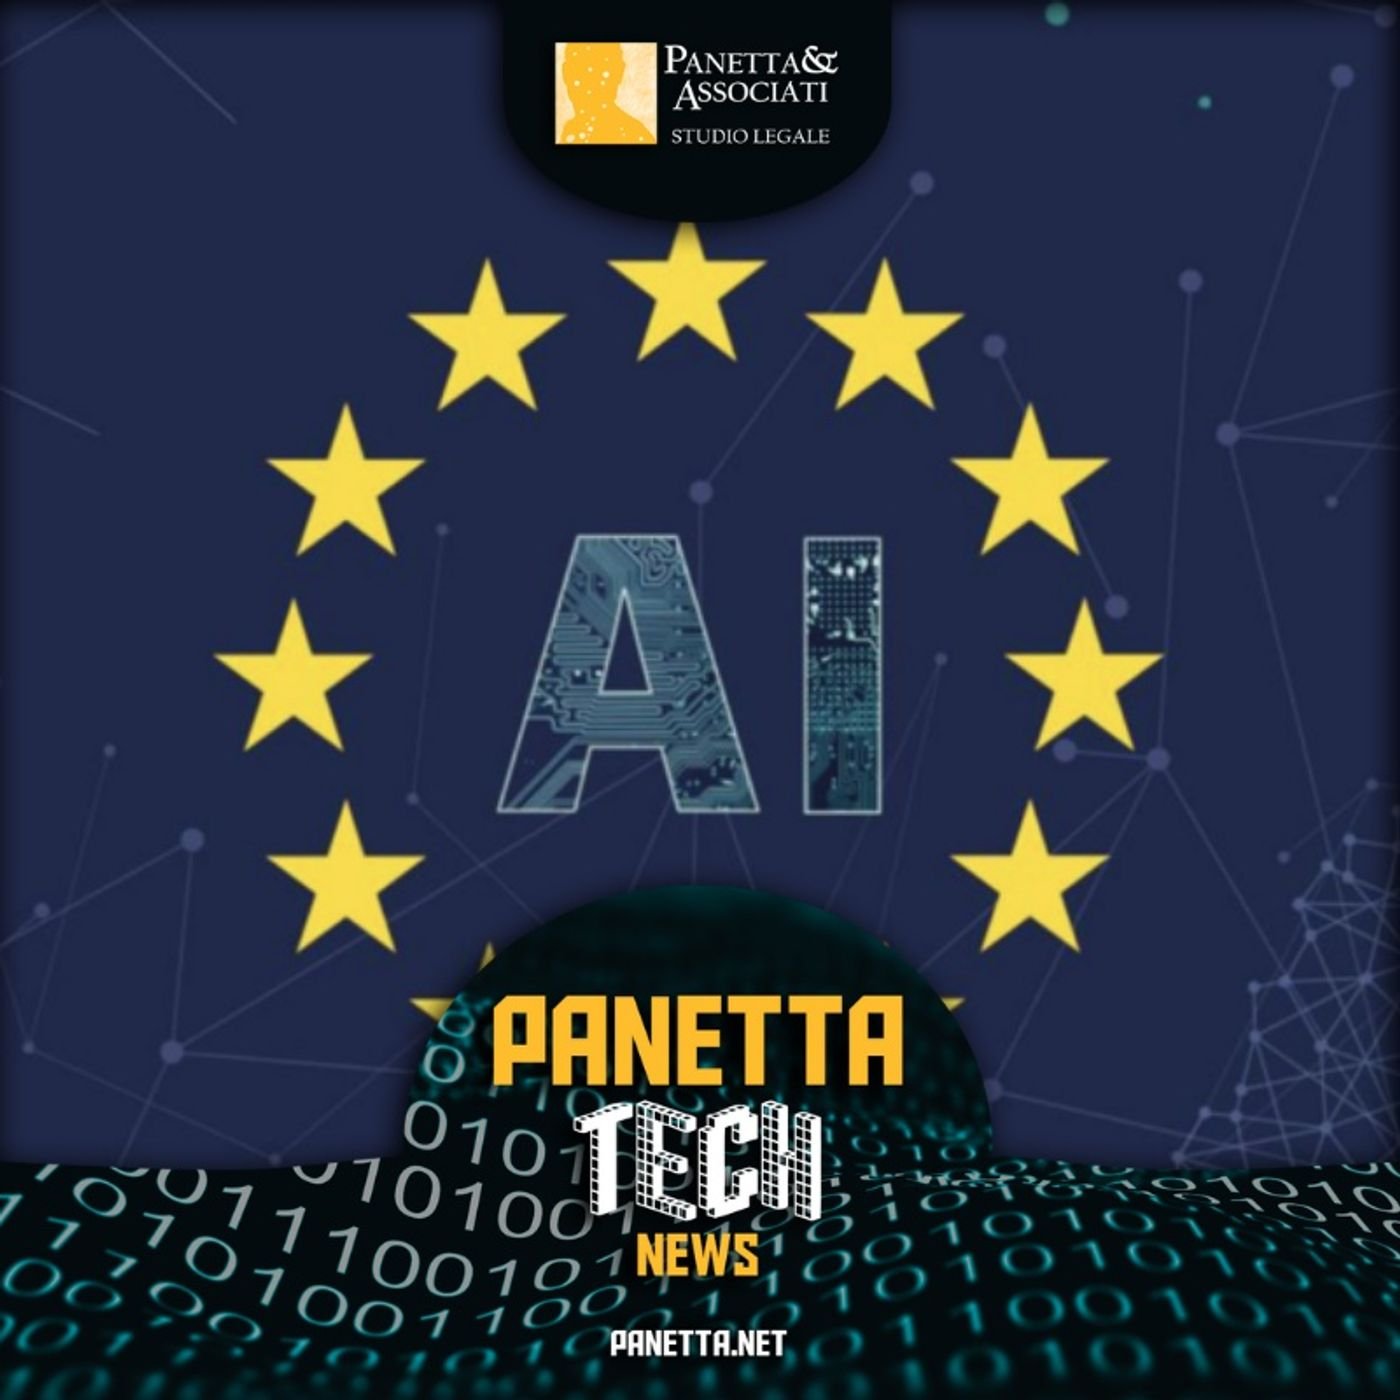 2. Panetta Paper: the European Artificial Intelligence Act still leaves many questions unanswered